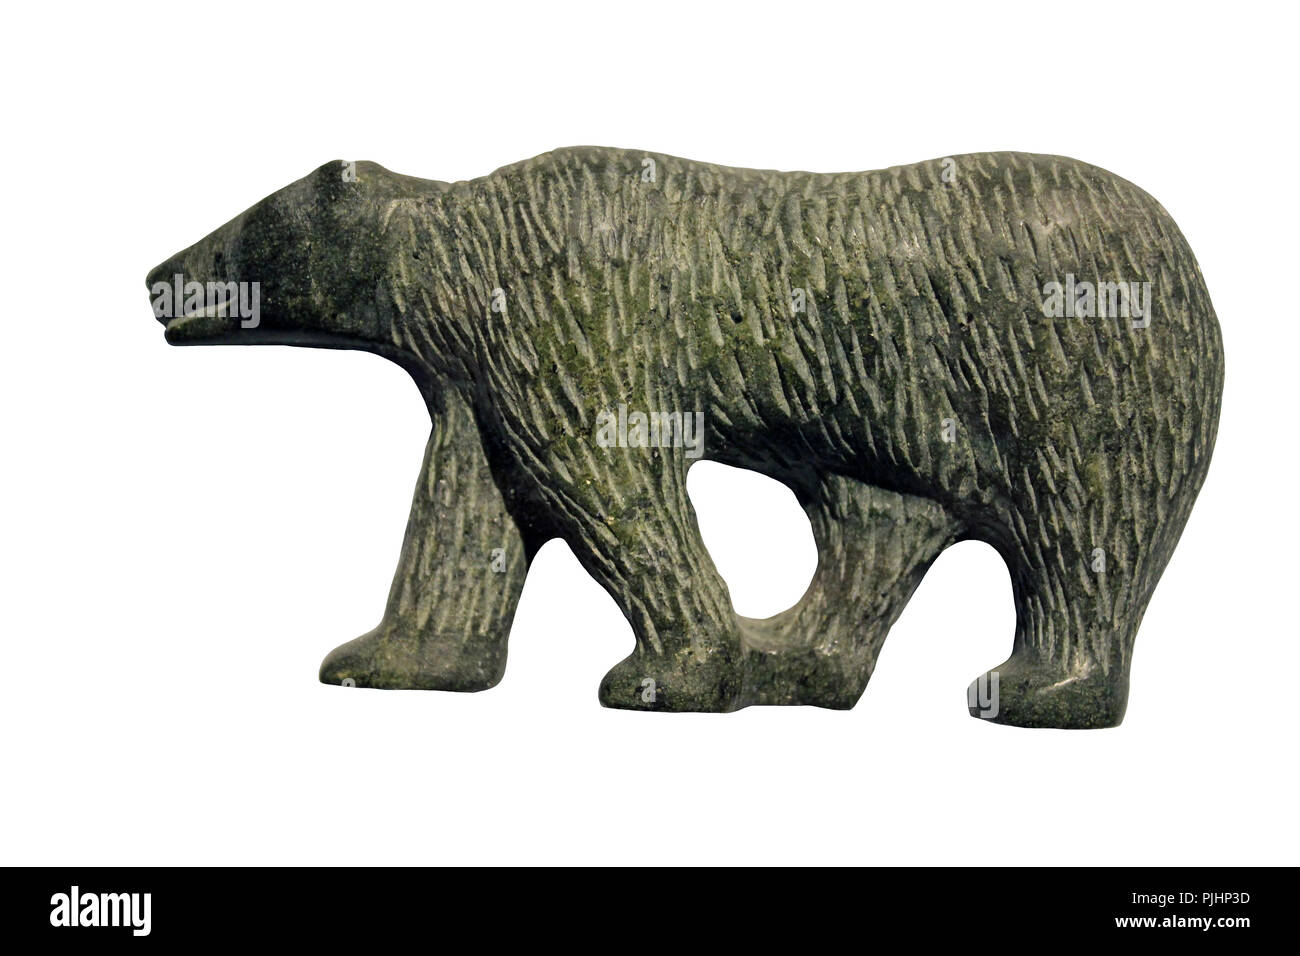 Inuit Soapstone Carving Of A Polar Bear - Stock Image